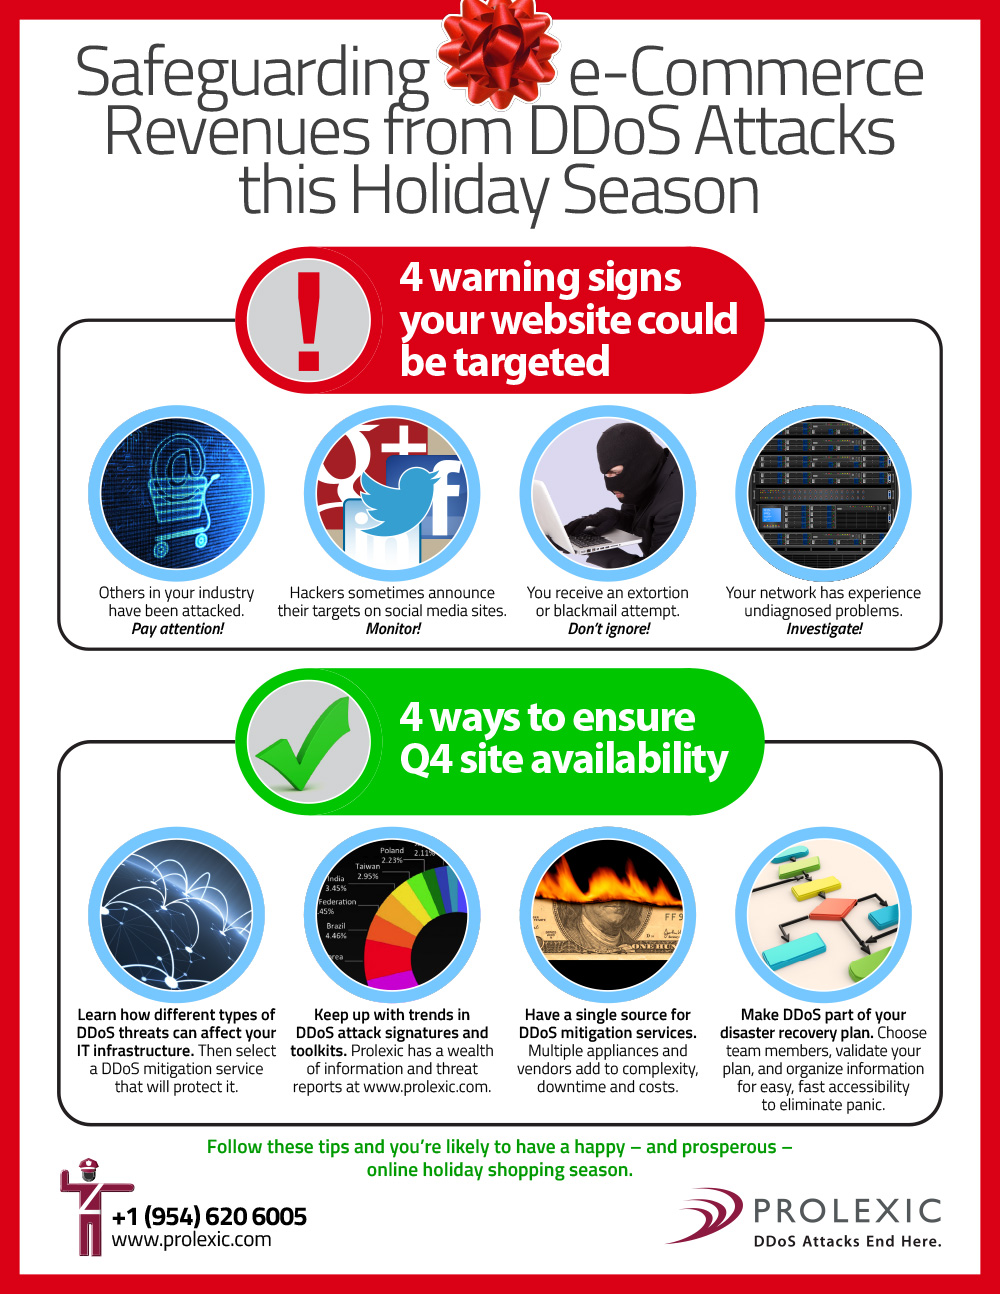 1000px-Safeguarding-the-Holidays-Infographic